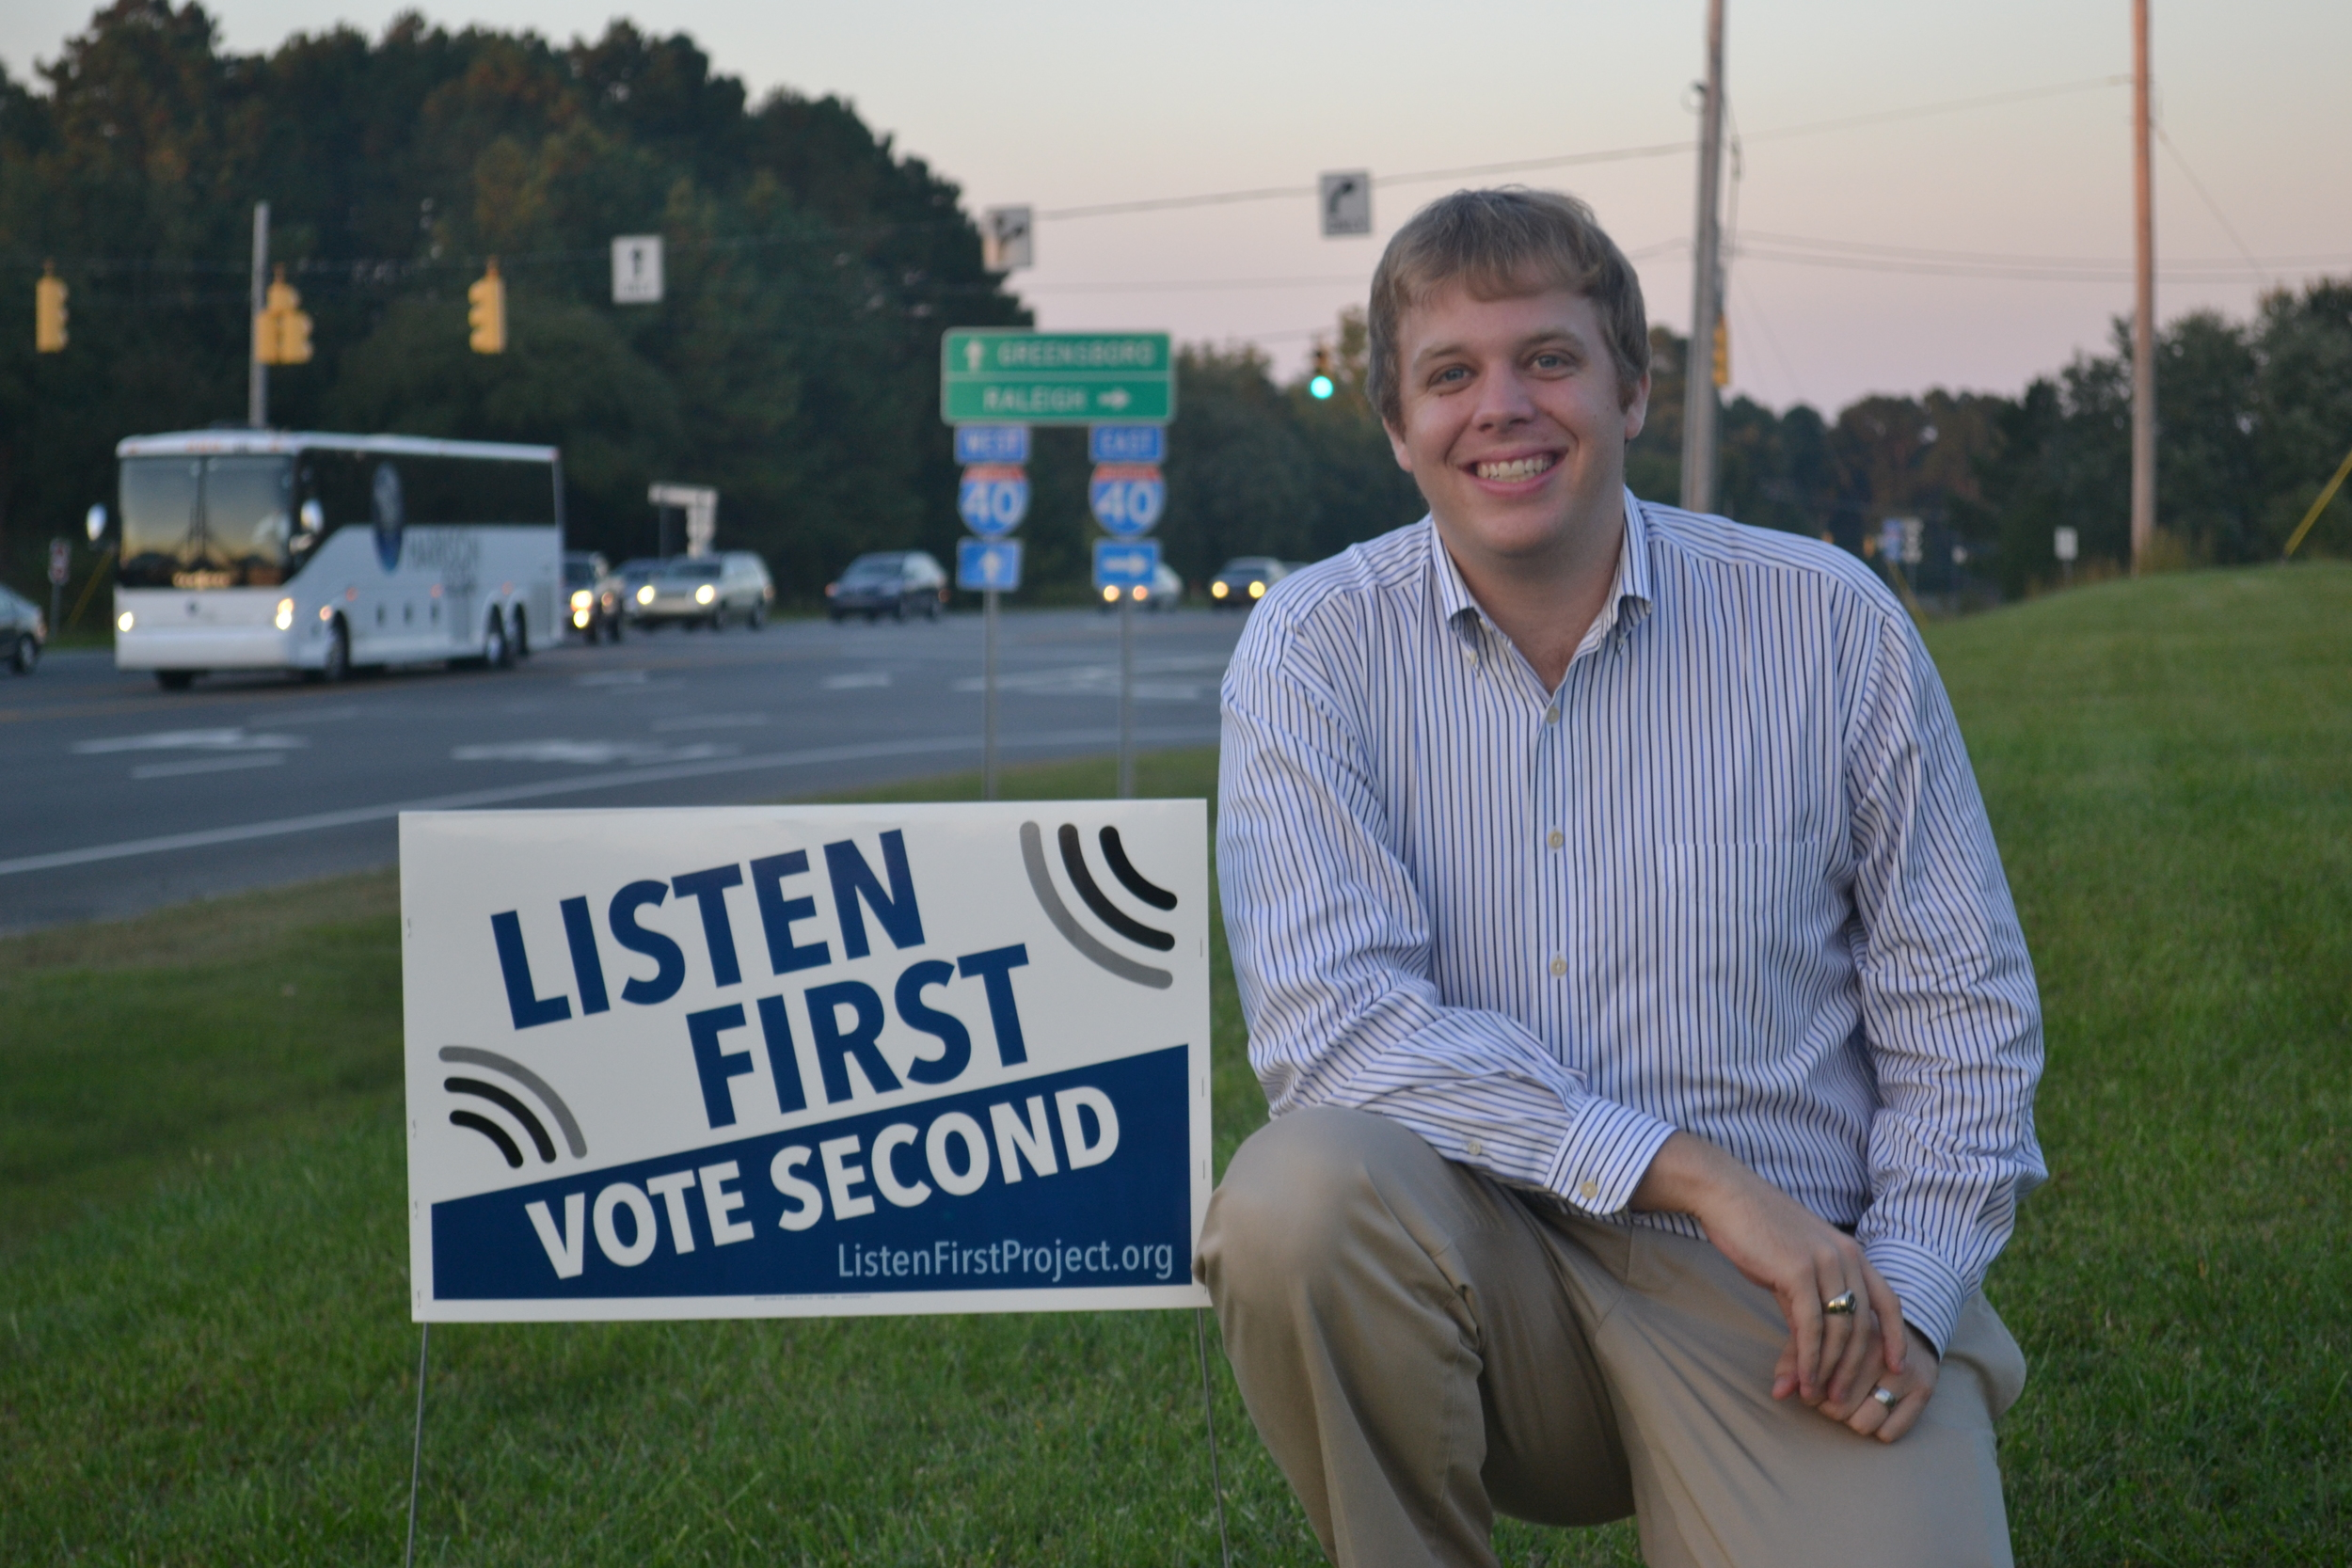 Pearce Godwin, Founder & President of Listen First Project,with2014 Election Season Political Signage